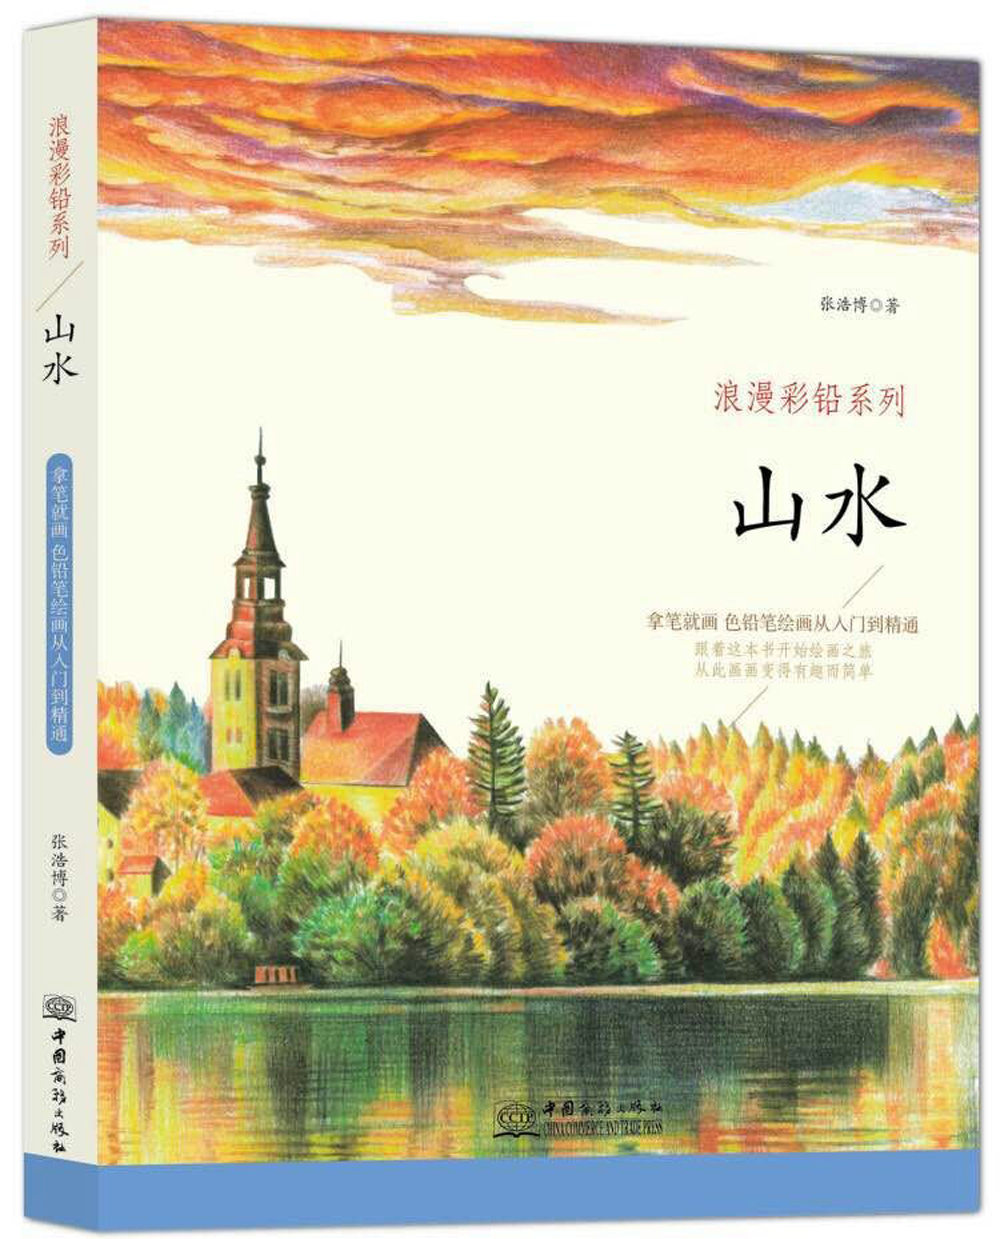 Chinese Color Pen Pencil Drawing Book About Landscape / Chinese Art Techniques Painting Coloring Book For Beginner